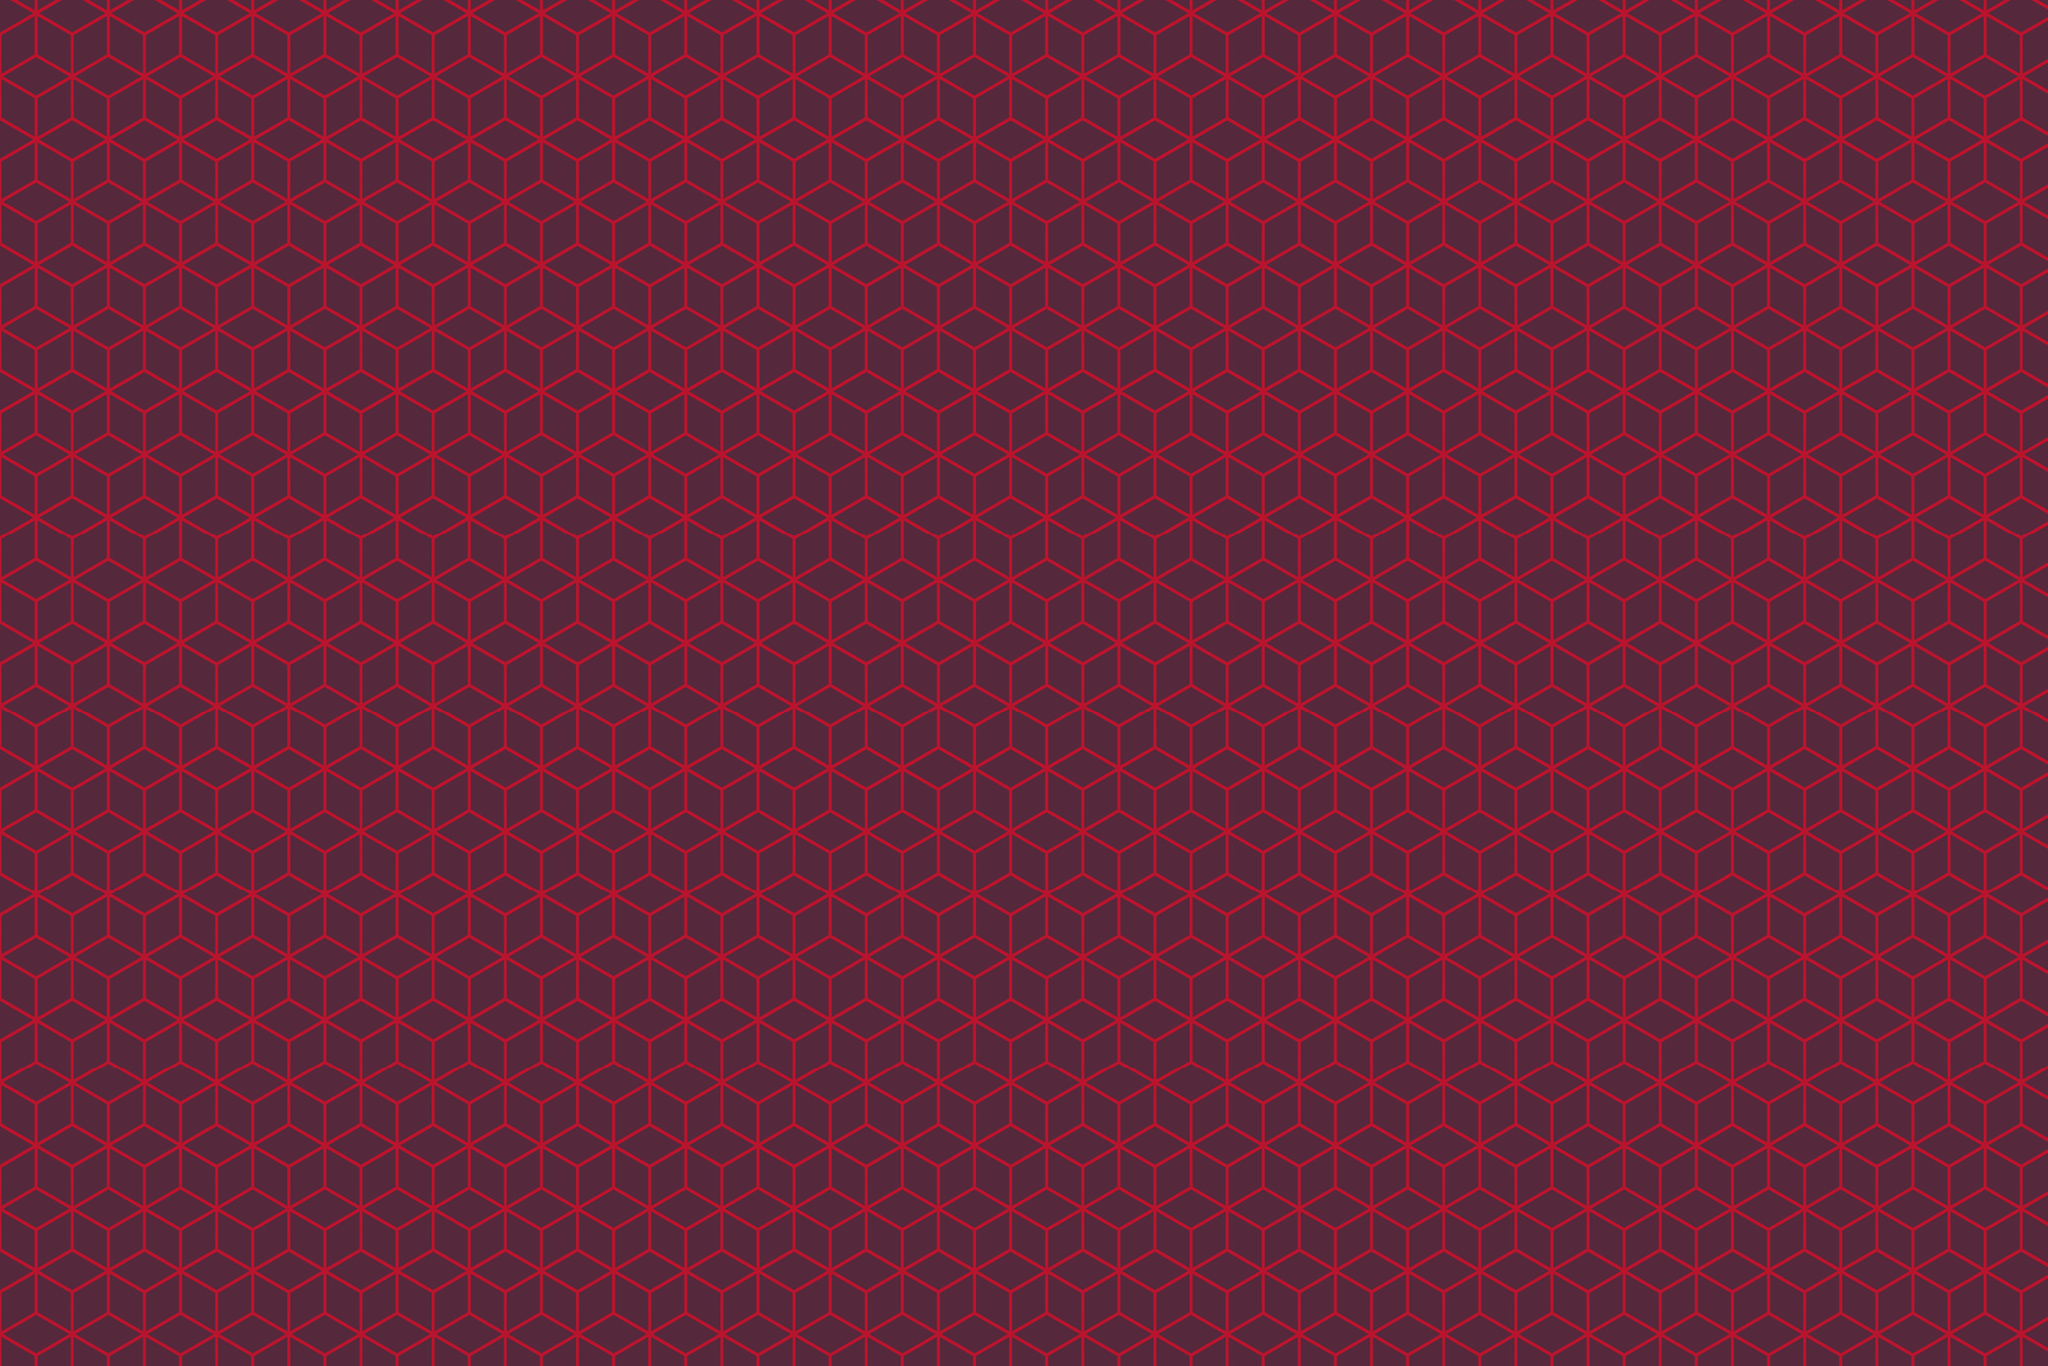 Geometic Print Wallpapers for desktop and phone